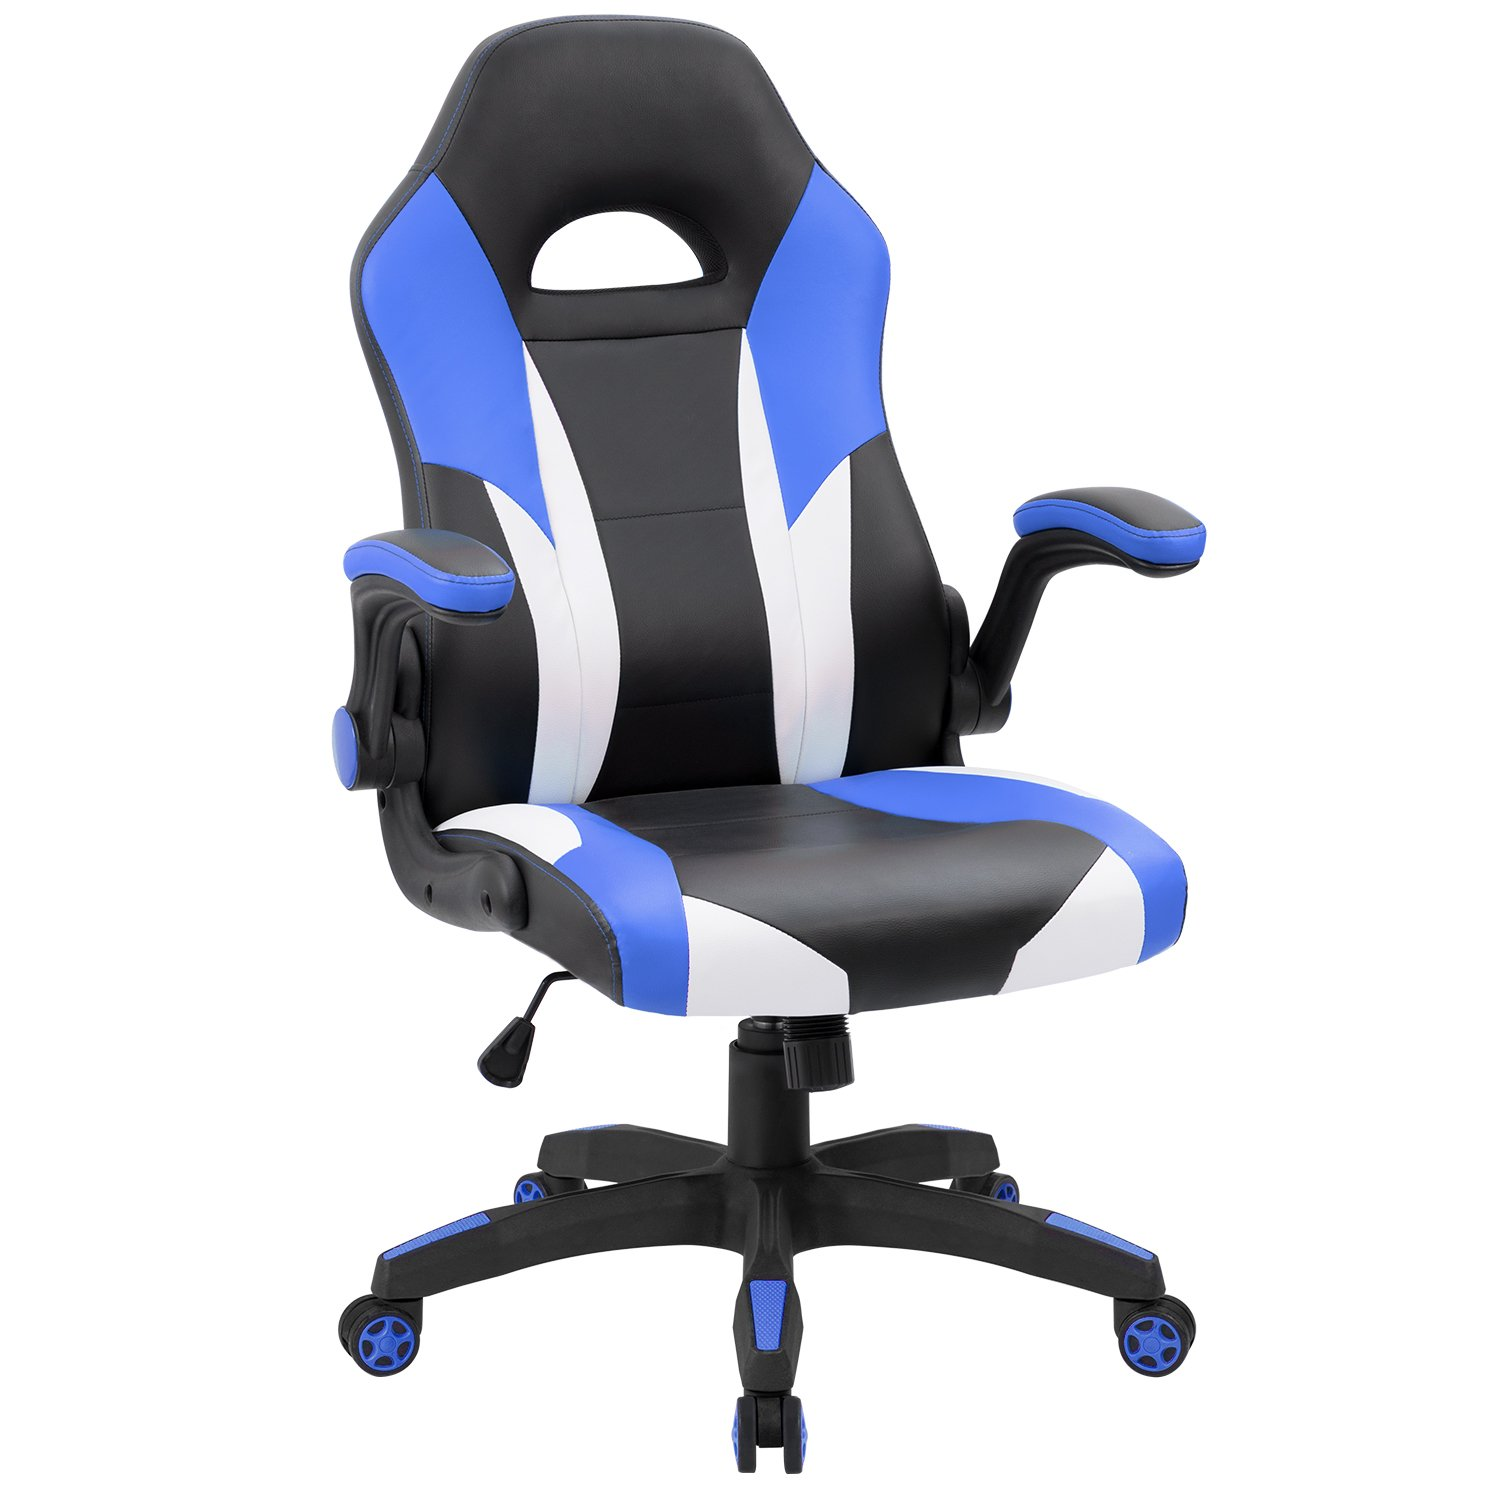 JUMMICO Gaming Chair Ergonomic Leather Racing Chair High Back Swivel Computer Chair with Flip-Up Armrest (Blue)